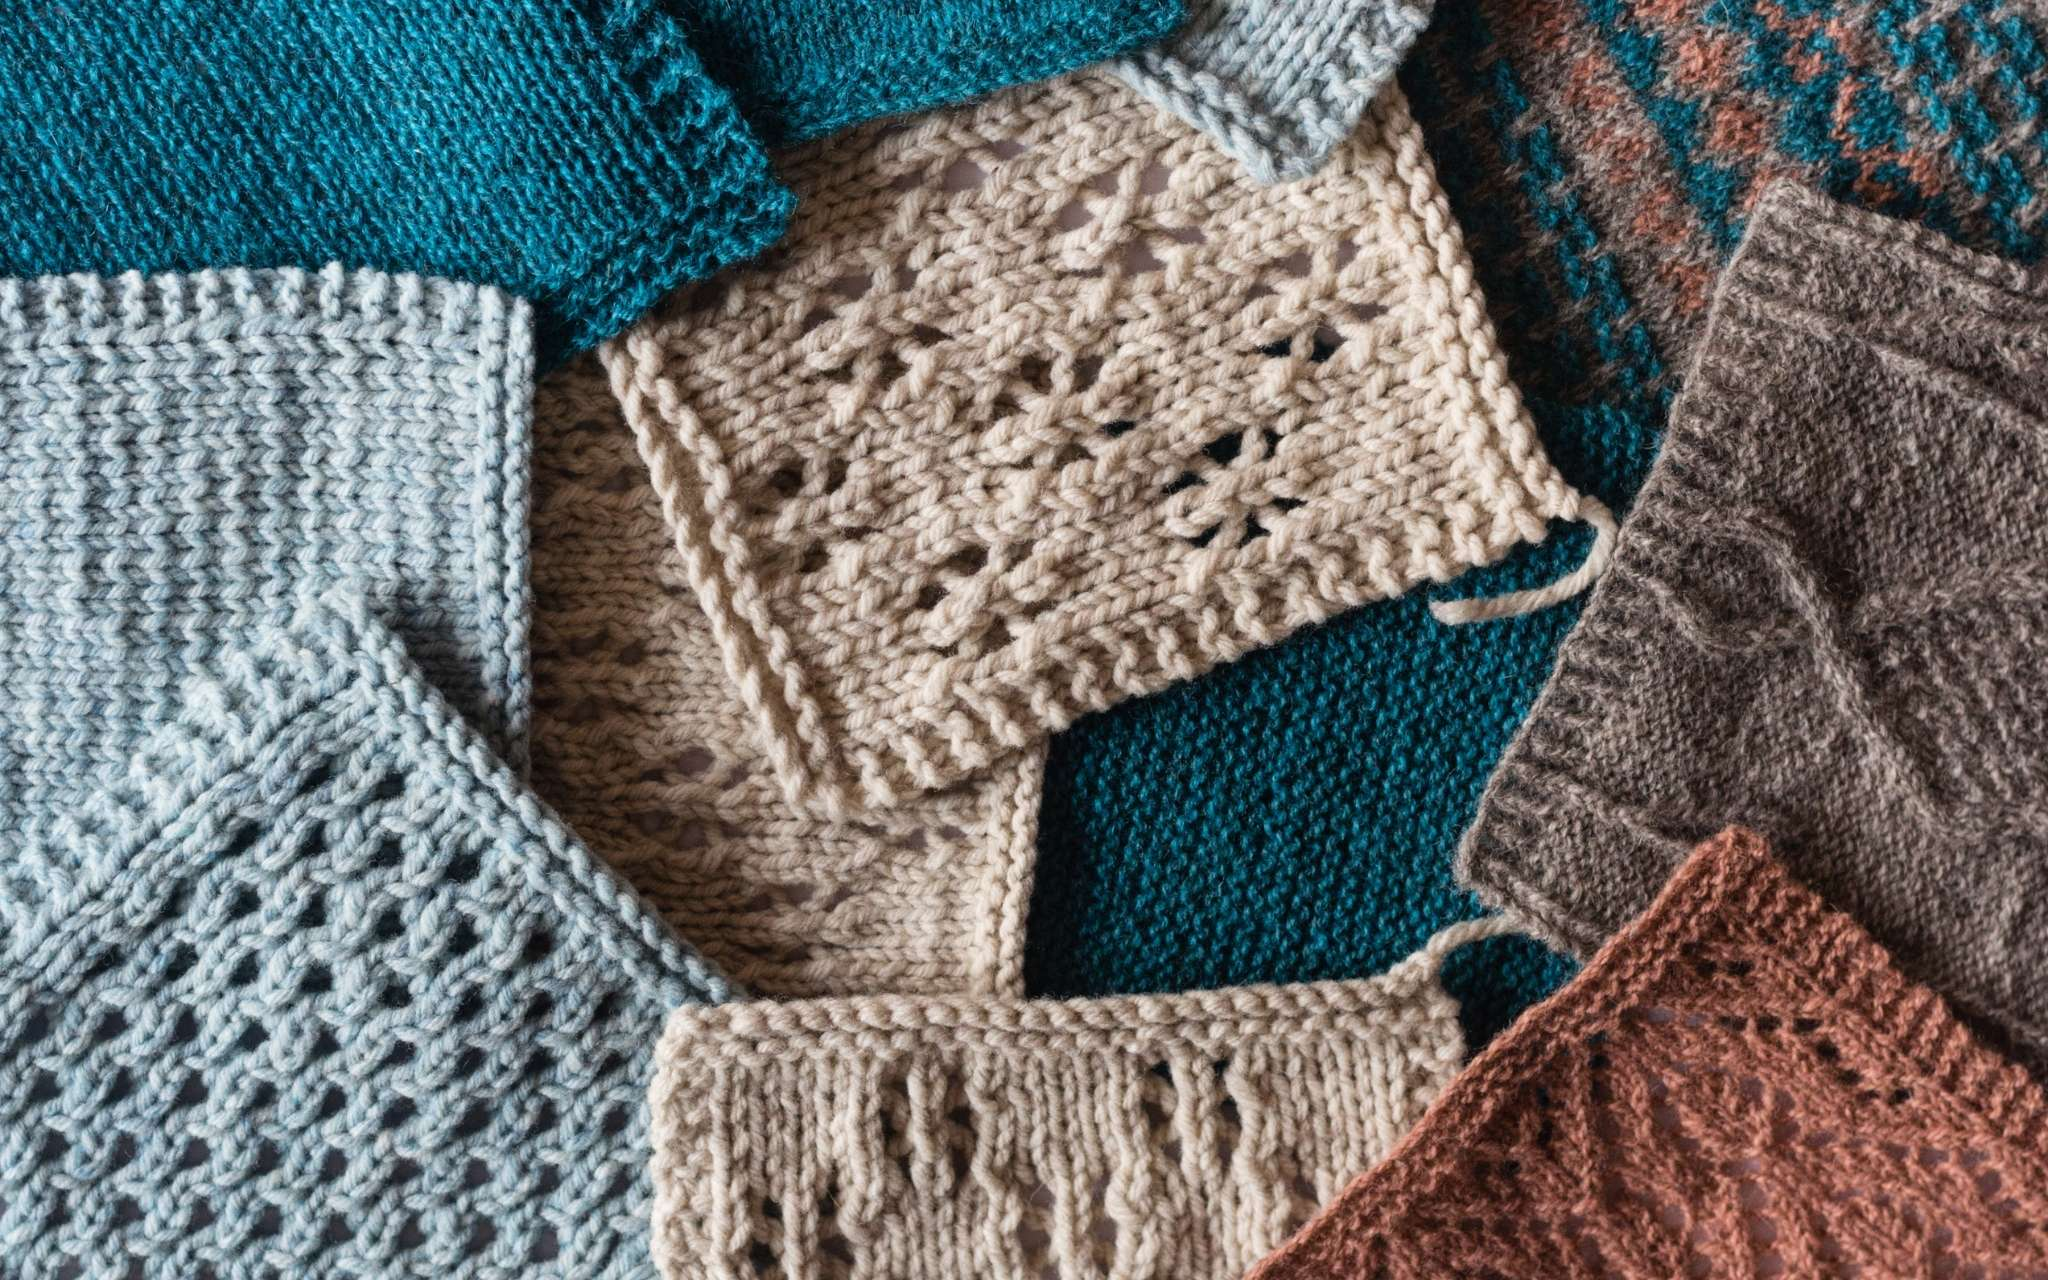 A pile of swatches, all laying flat and overlapping so that they are all that is visible. They are knitted in lace and textured stitch patterns in shades of beige, blues and brown.s